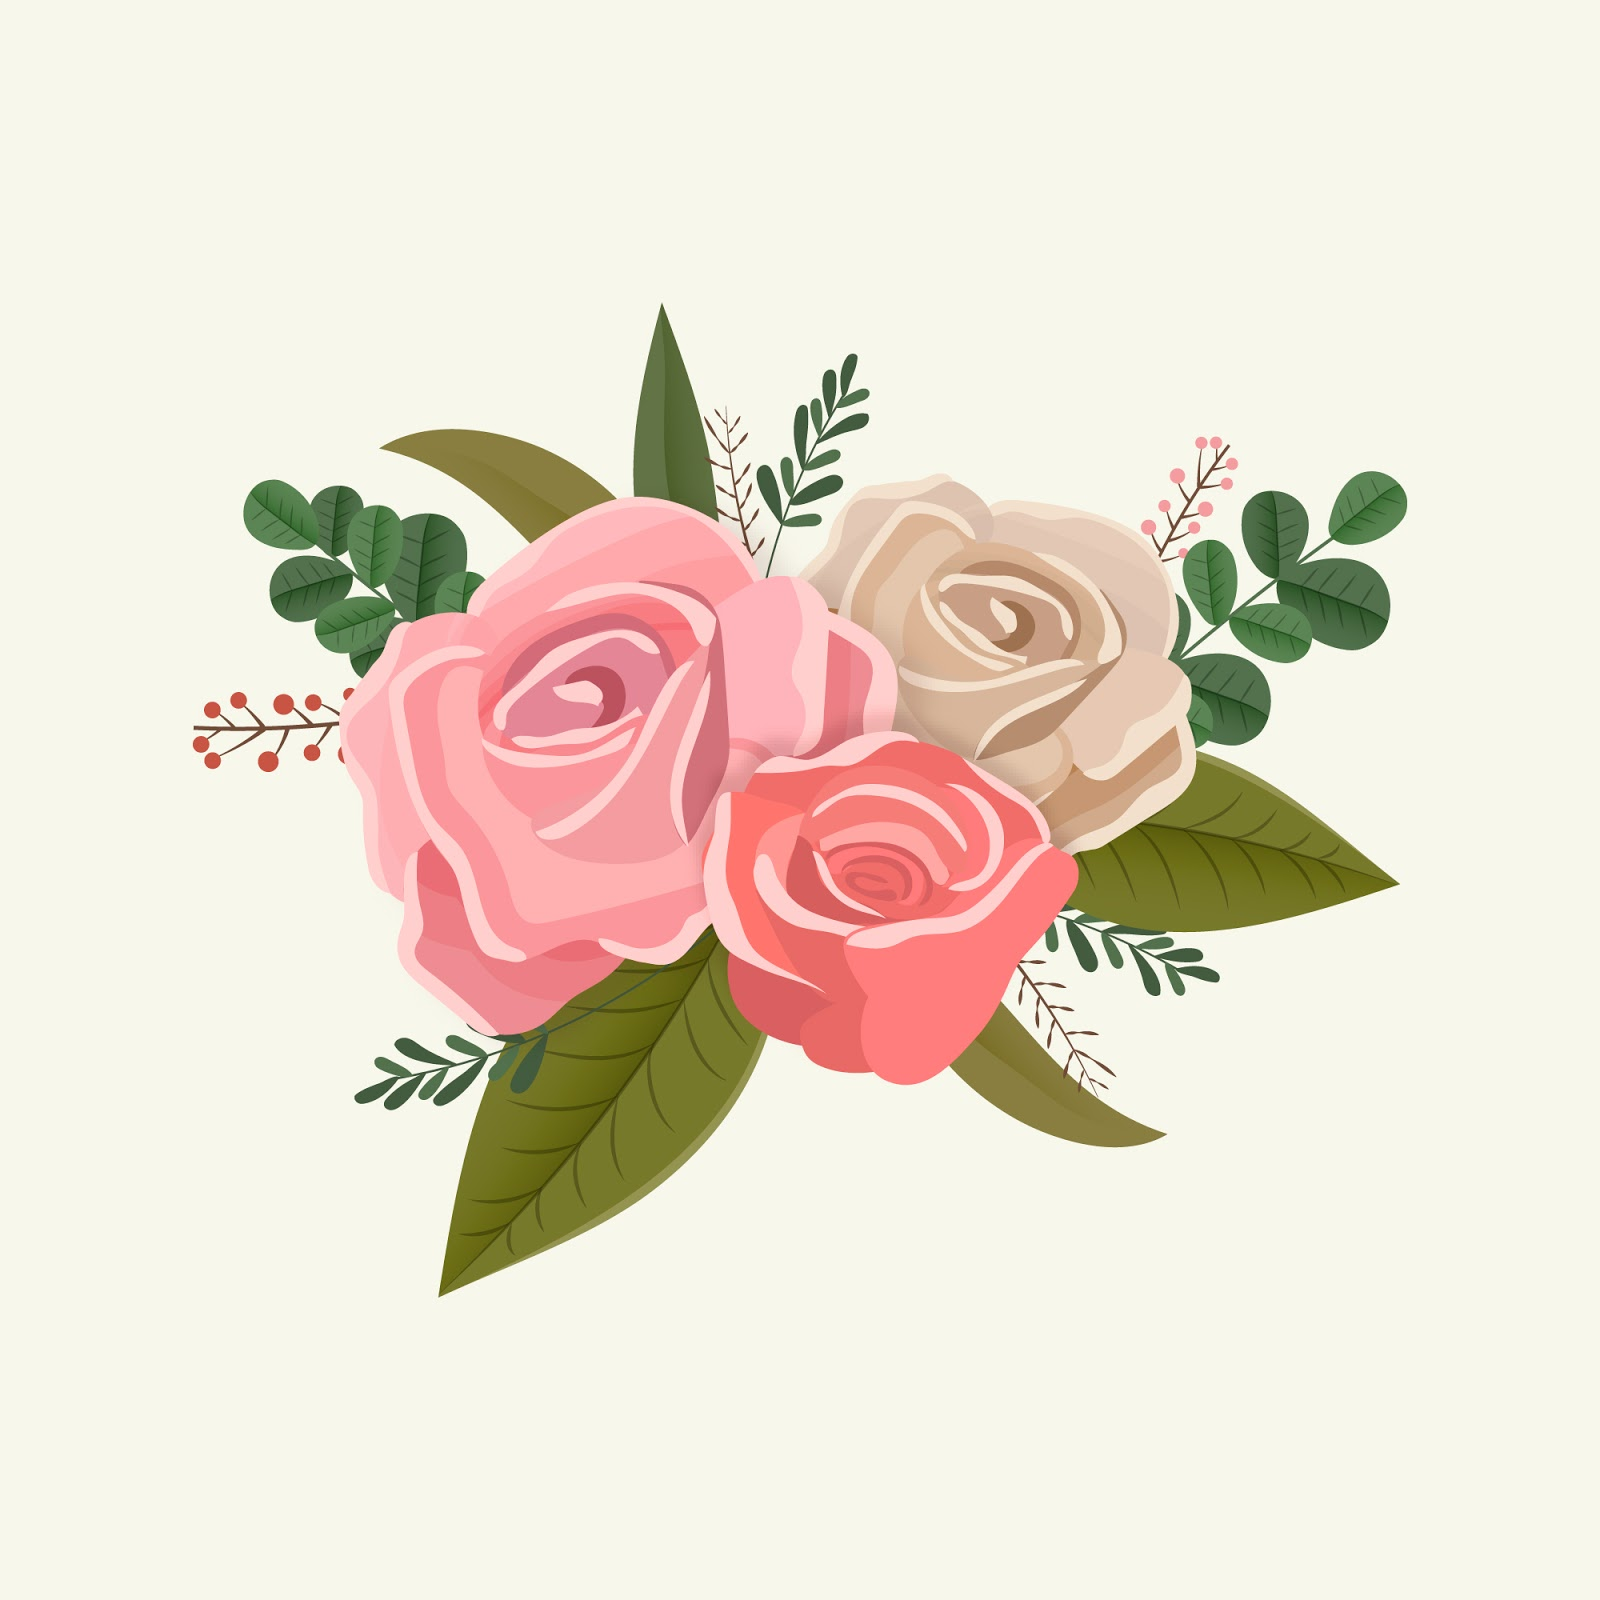 Vintage Floral Bouquet Roses Free Download Vector CDR, AI, EPS and PNG Formats